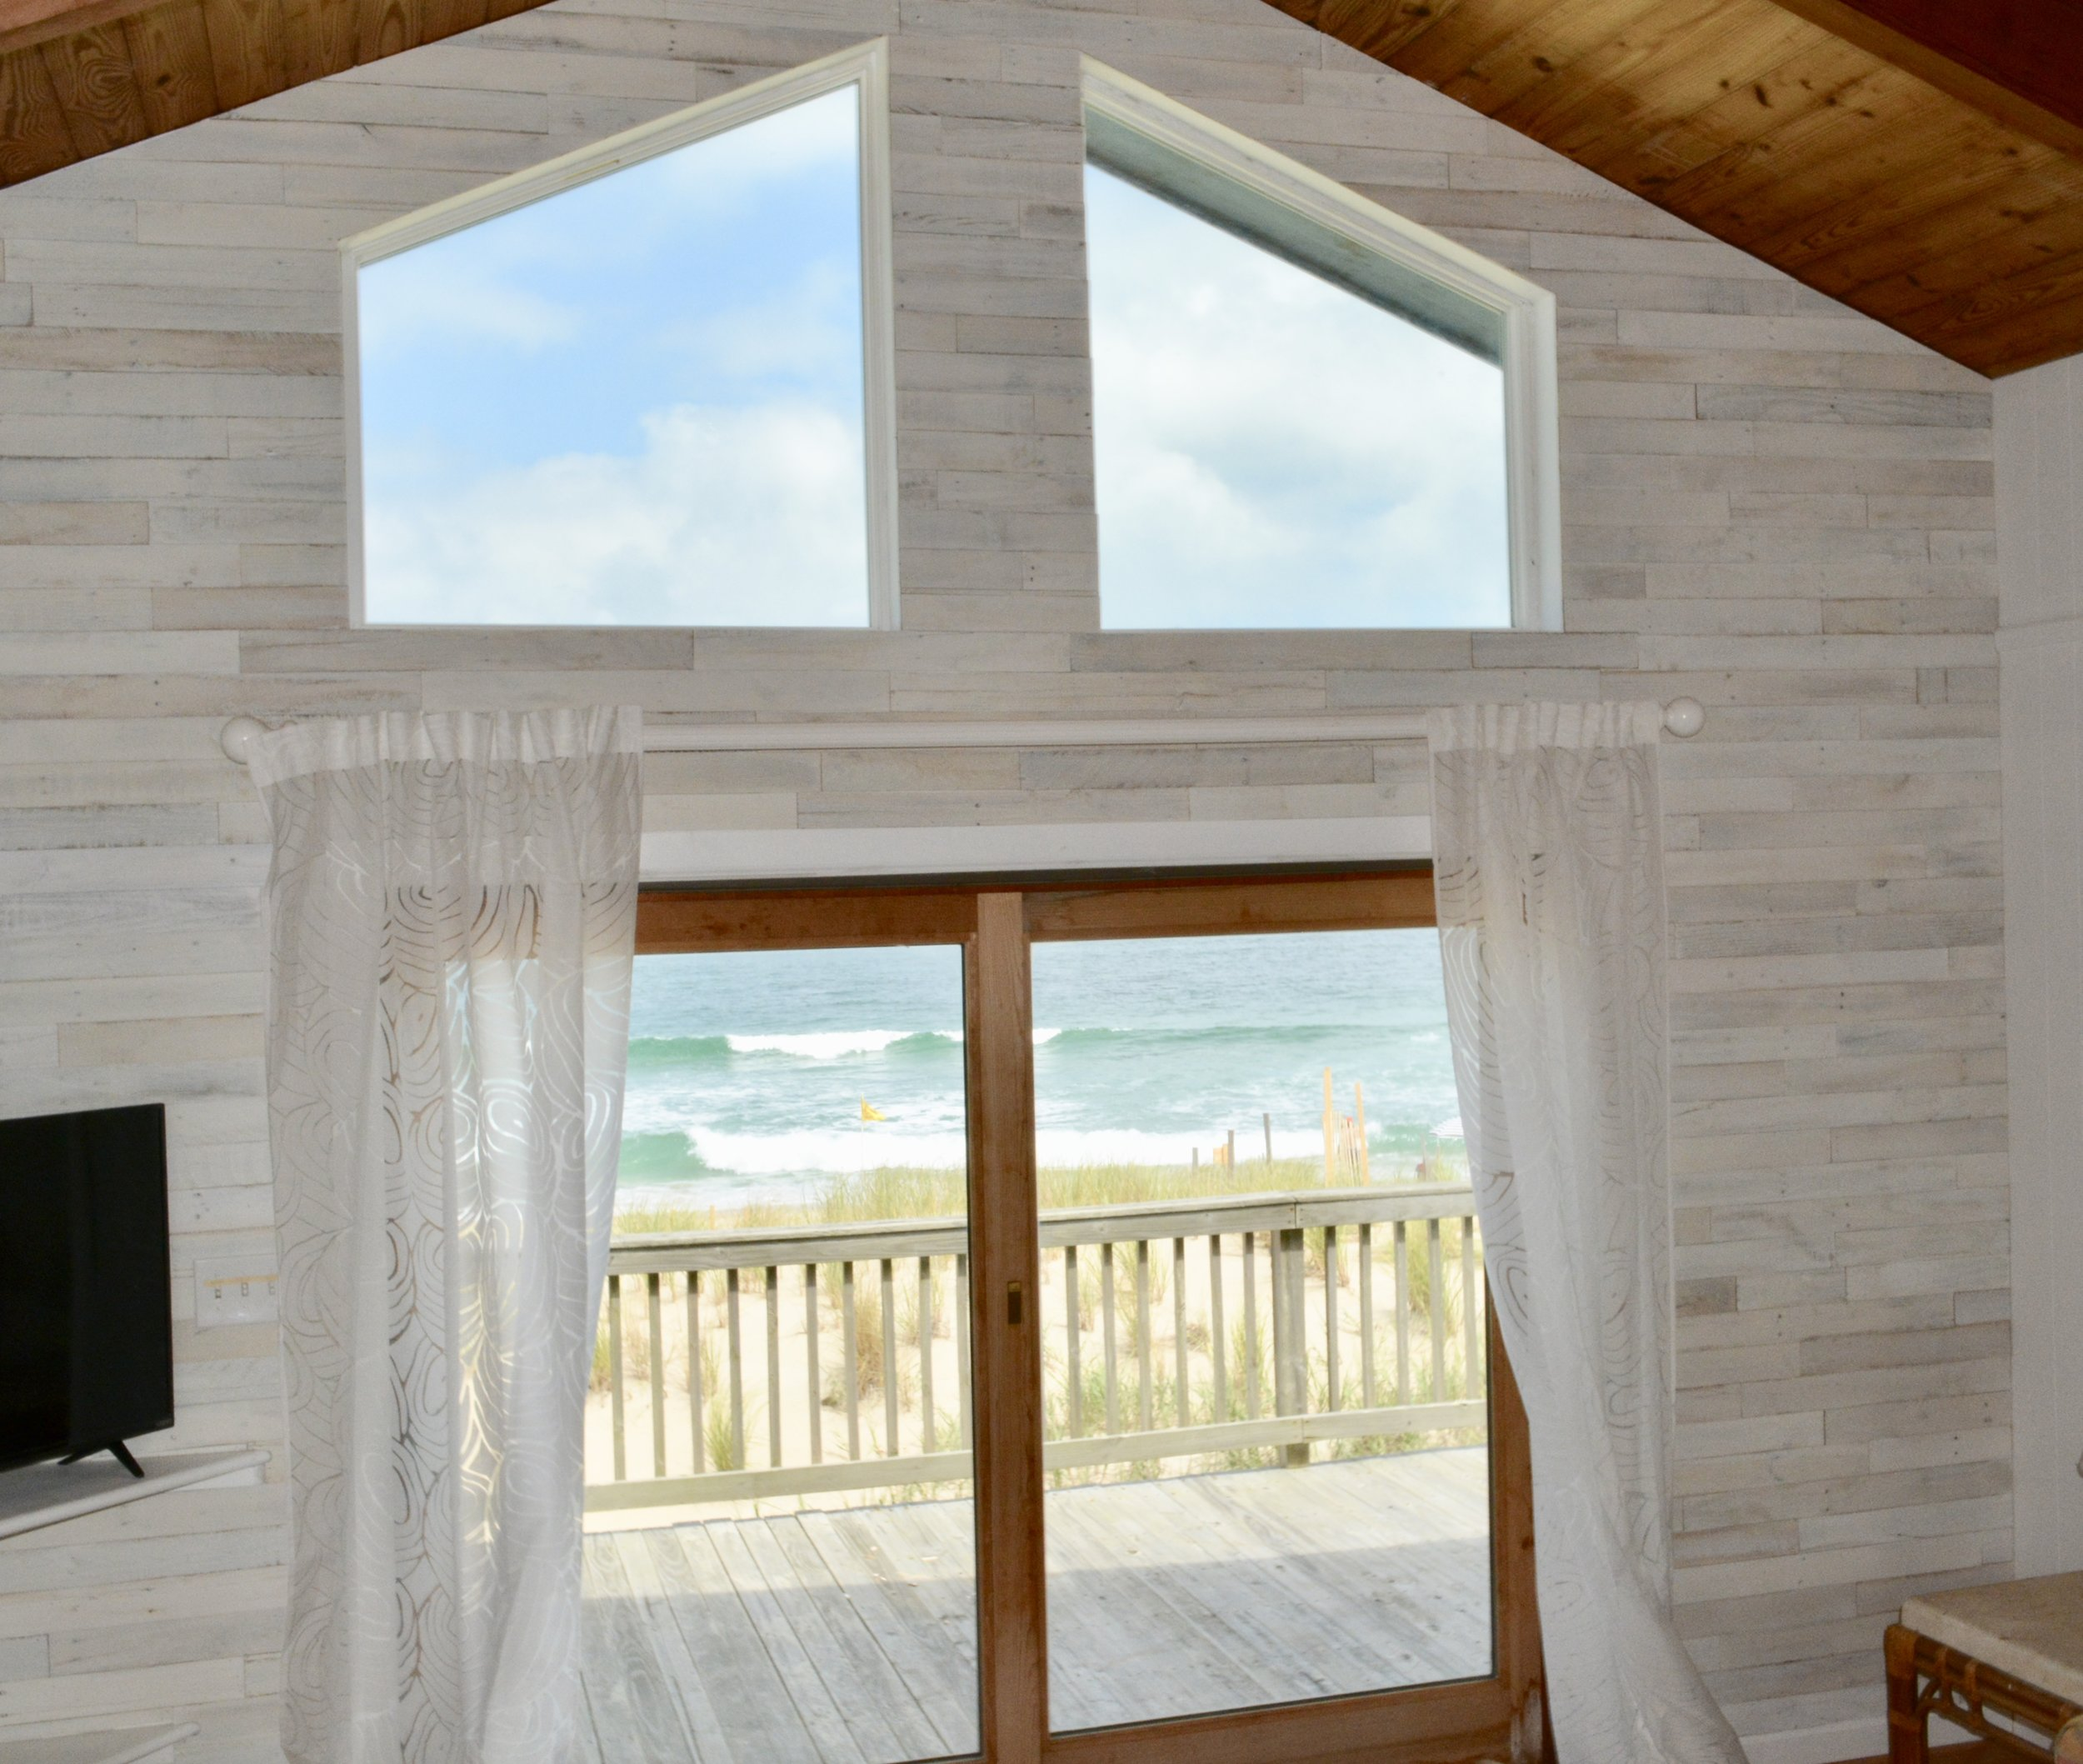 """""""I really, really love it, and so does everyone who has seen it. It makes the room feel larger and just so much more inviting. Unqualified recommendation for Reclaimed Wood Interiors!""""     Pat H - Nags Head, NC Via Survey"""